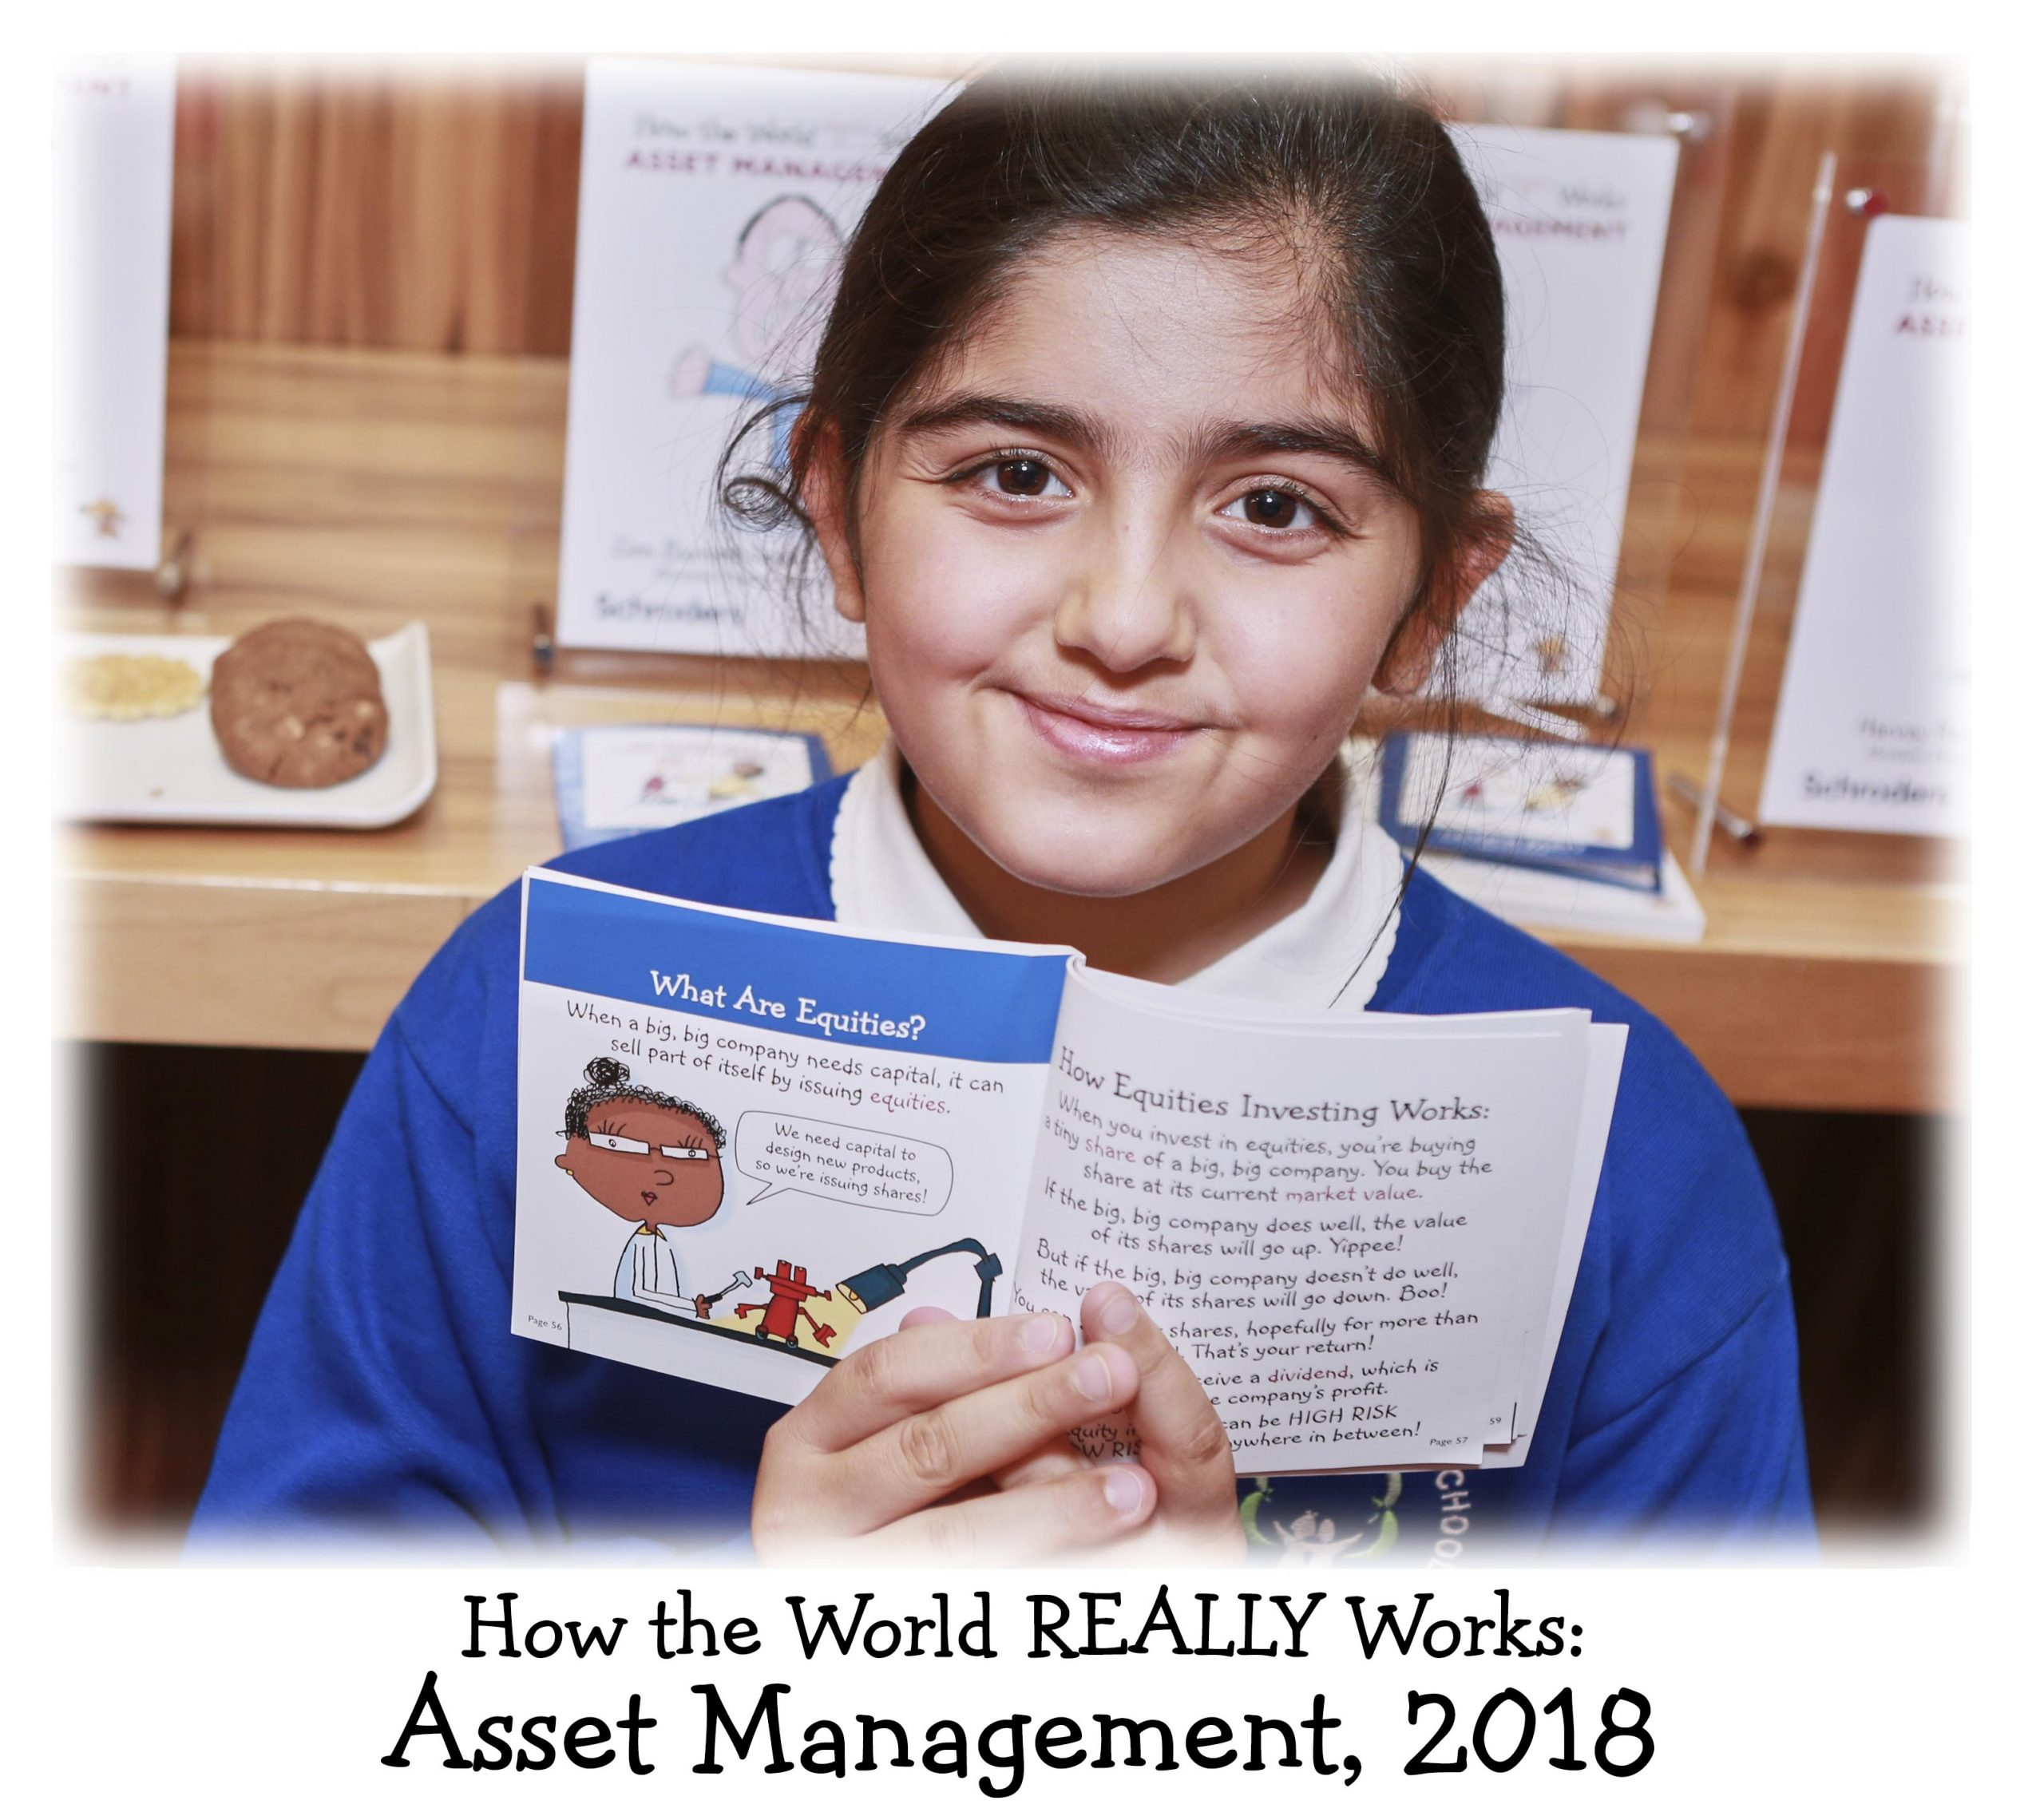 A child shows her drawing in the Asset Management book